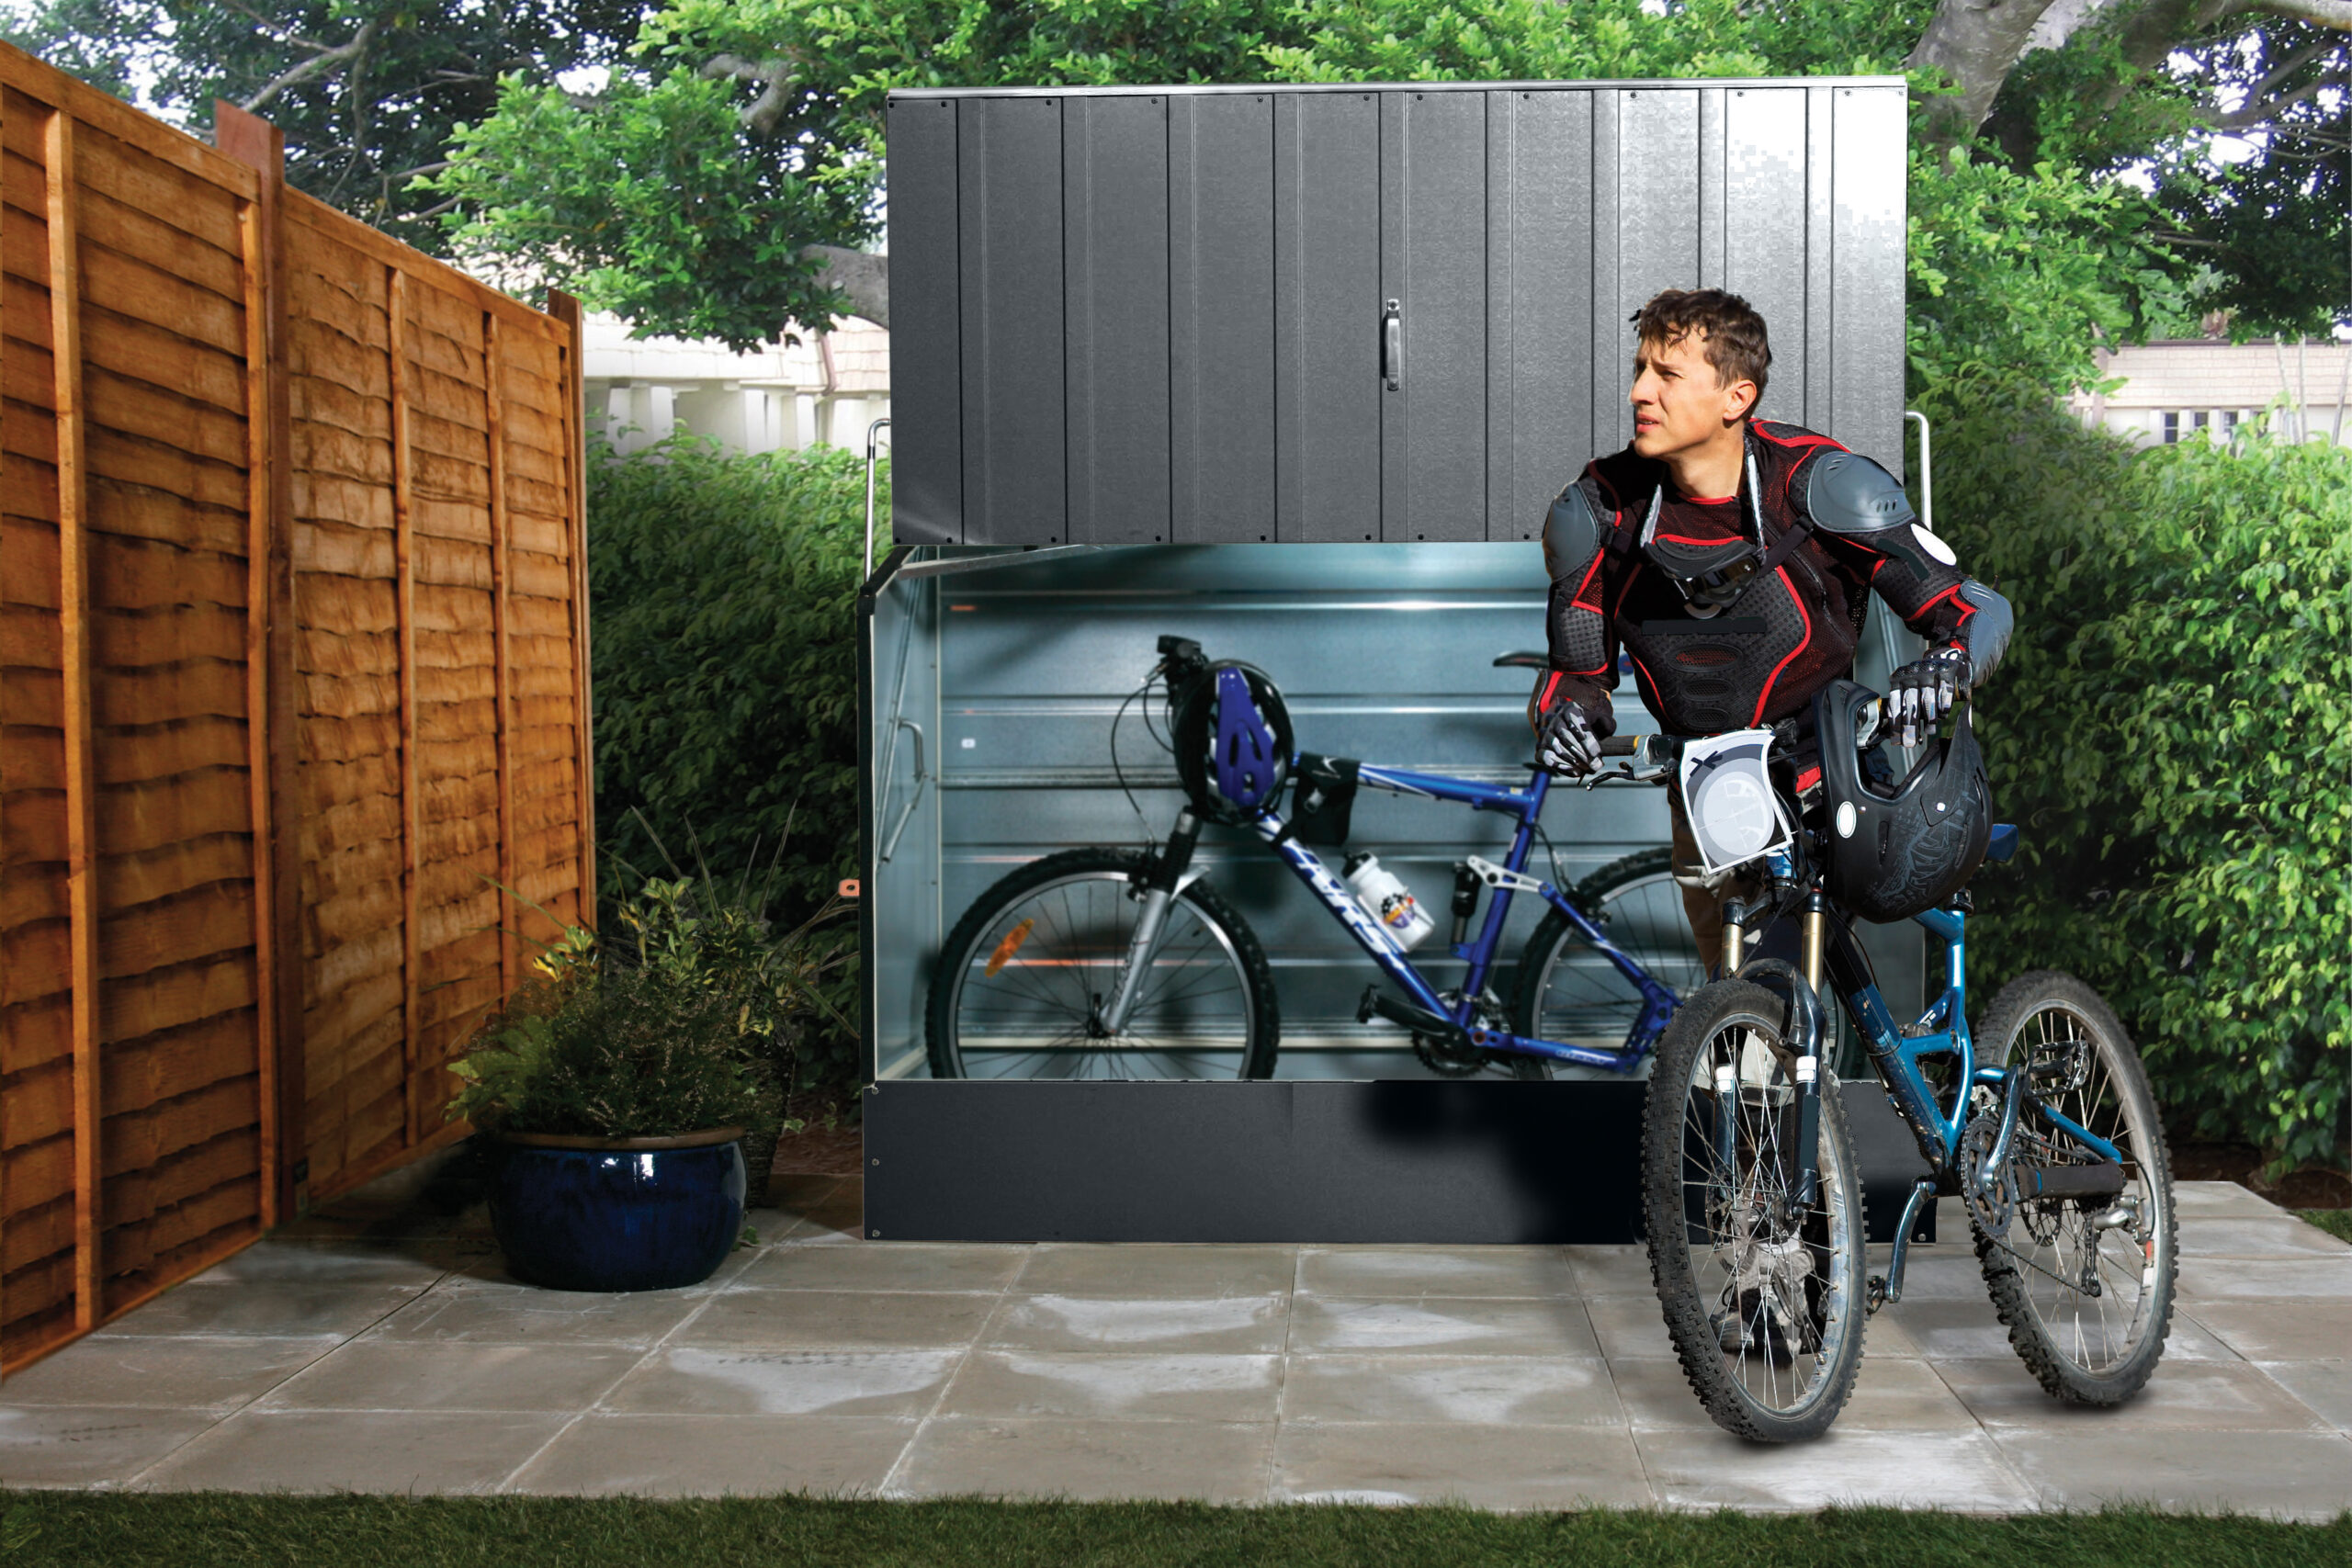 Bike Storage: Sheds or Racks and Stands?